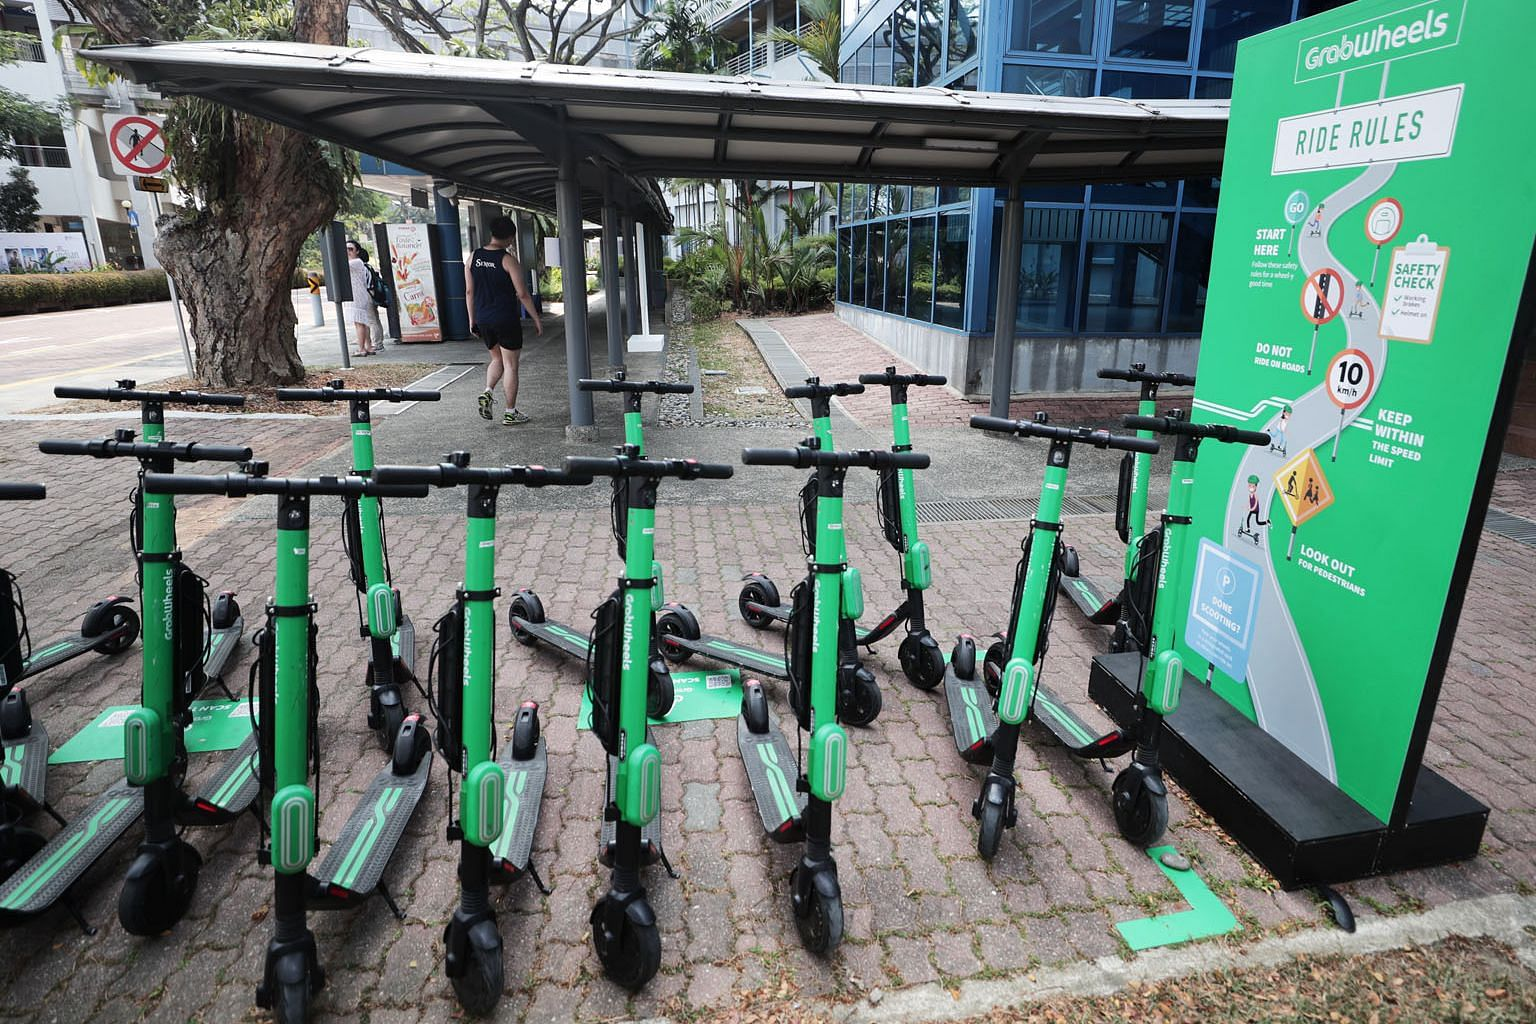 A week-long safety timeout on the GrabWheels e-scooter service trial at the National University, following a spate of injuries, will be lifted today.